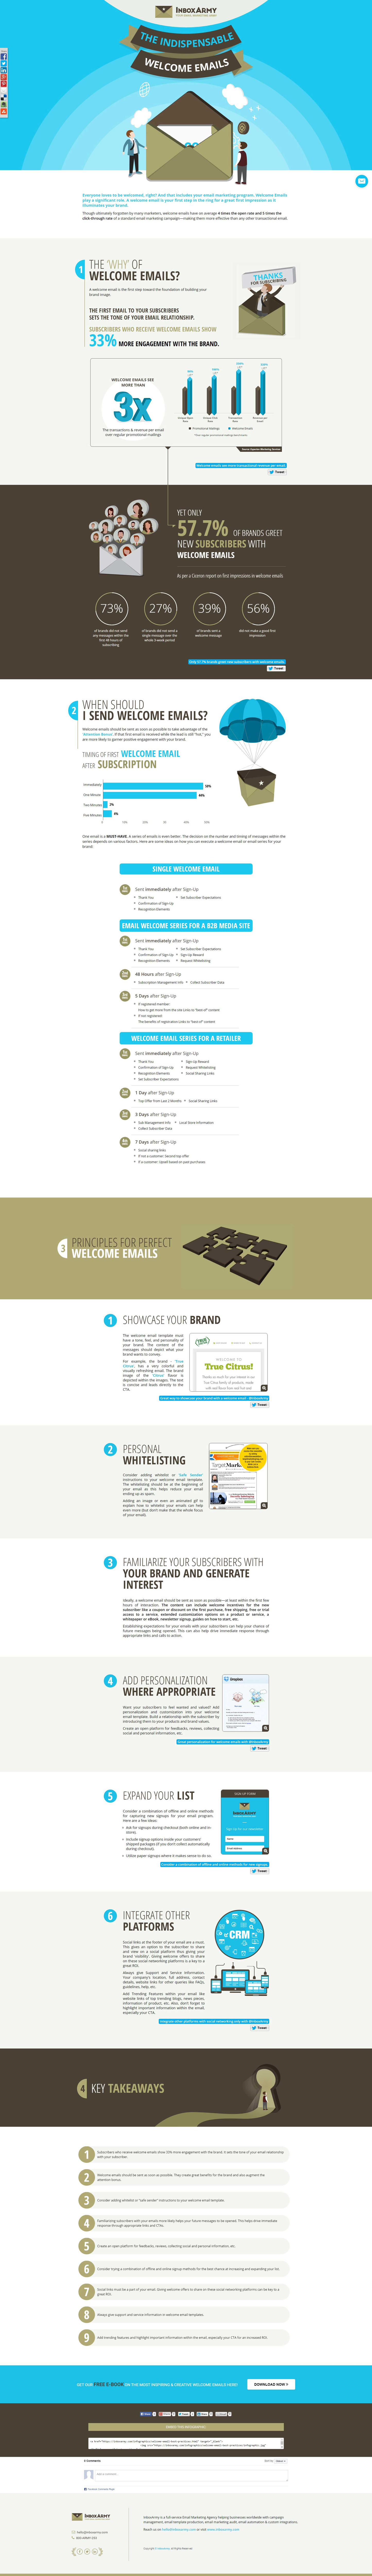 Welcome Email Optimize Your Welcome Email Template - Interactive email template